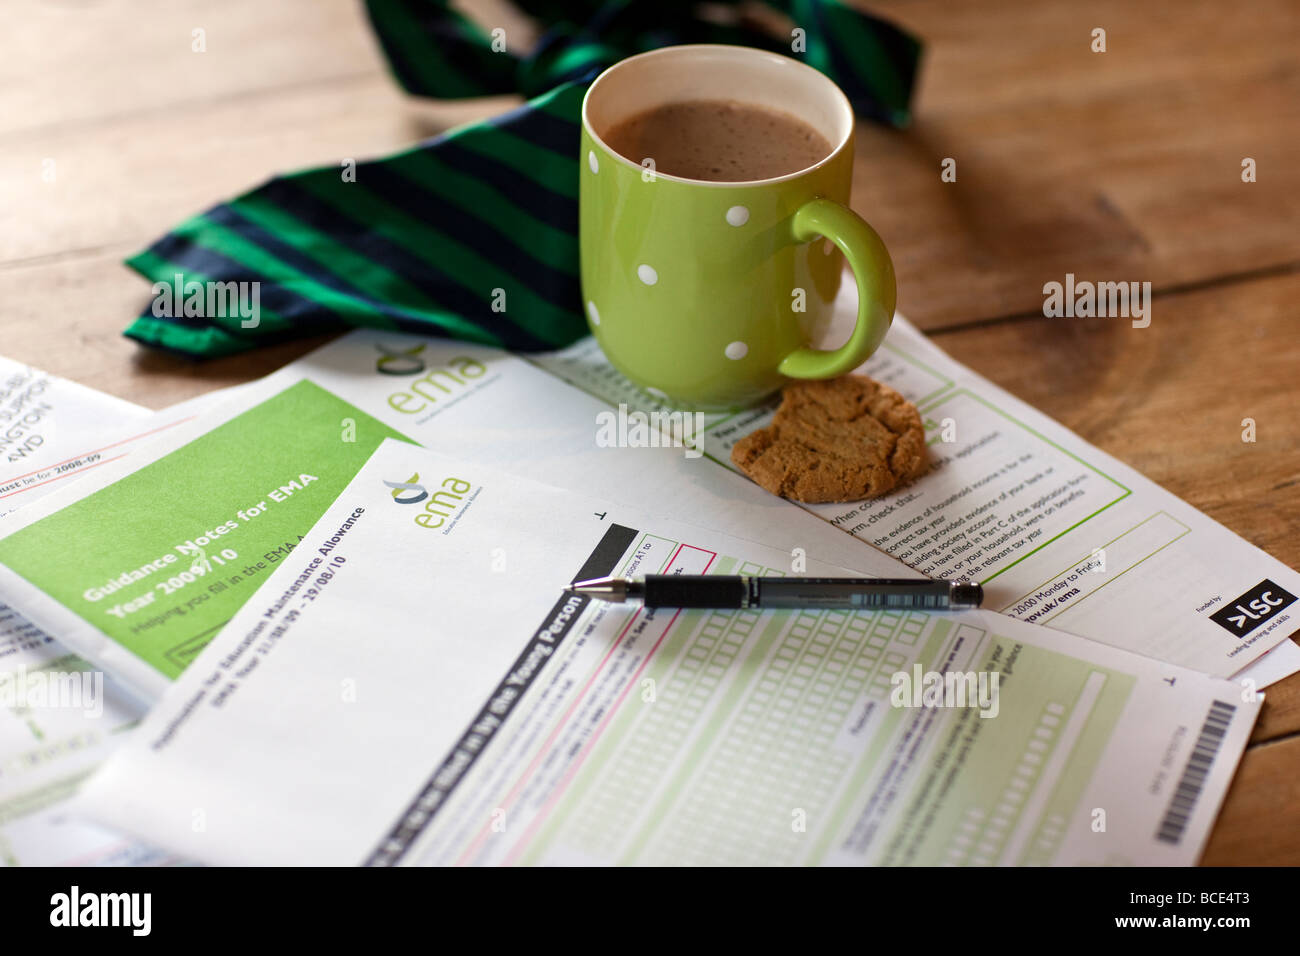 Filling in an Education Maintenance Allowance form, UK - Stock Image